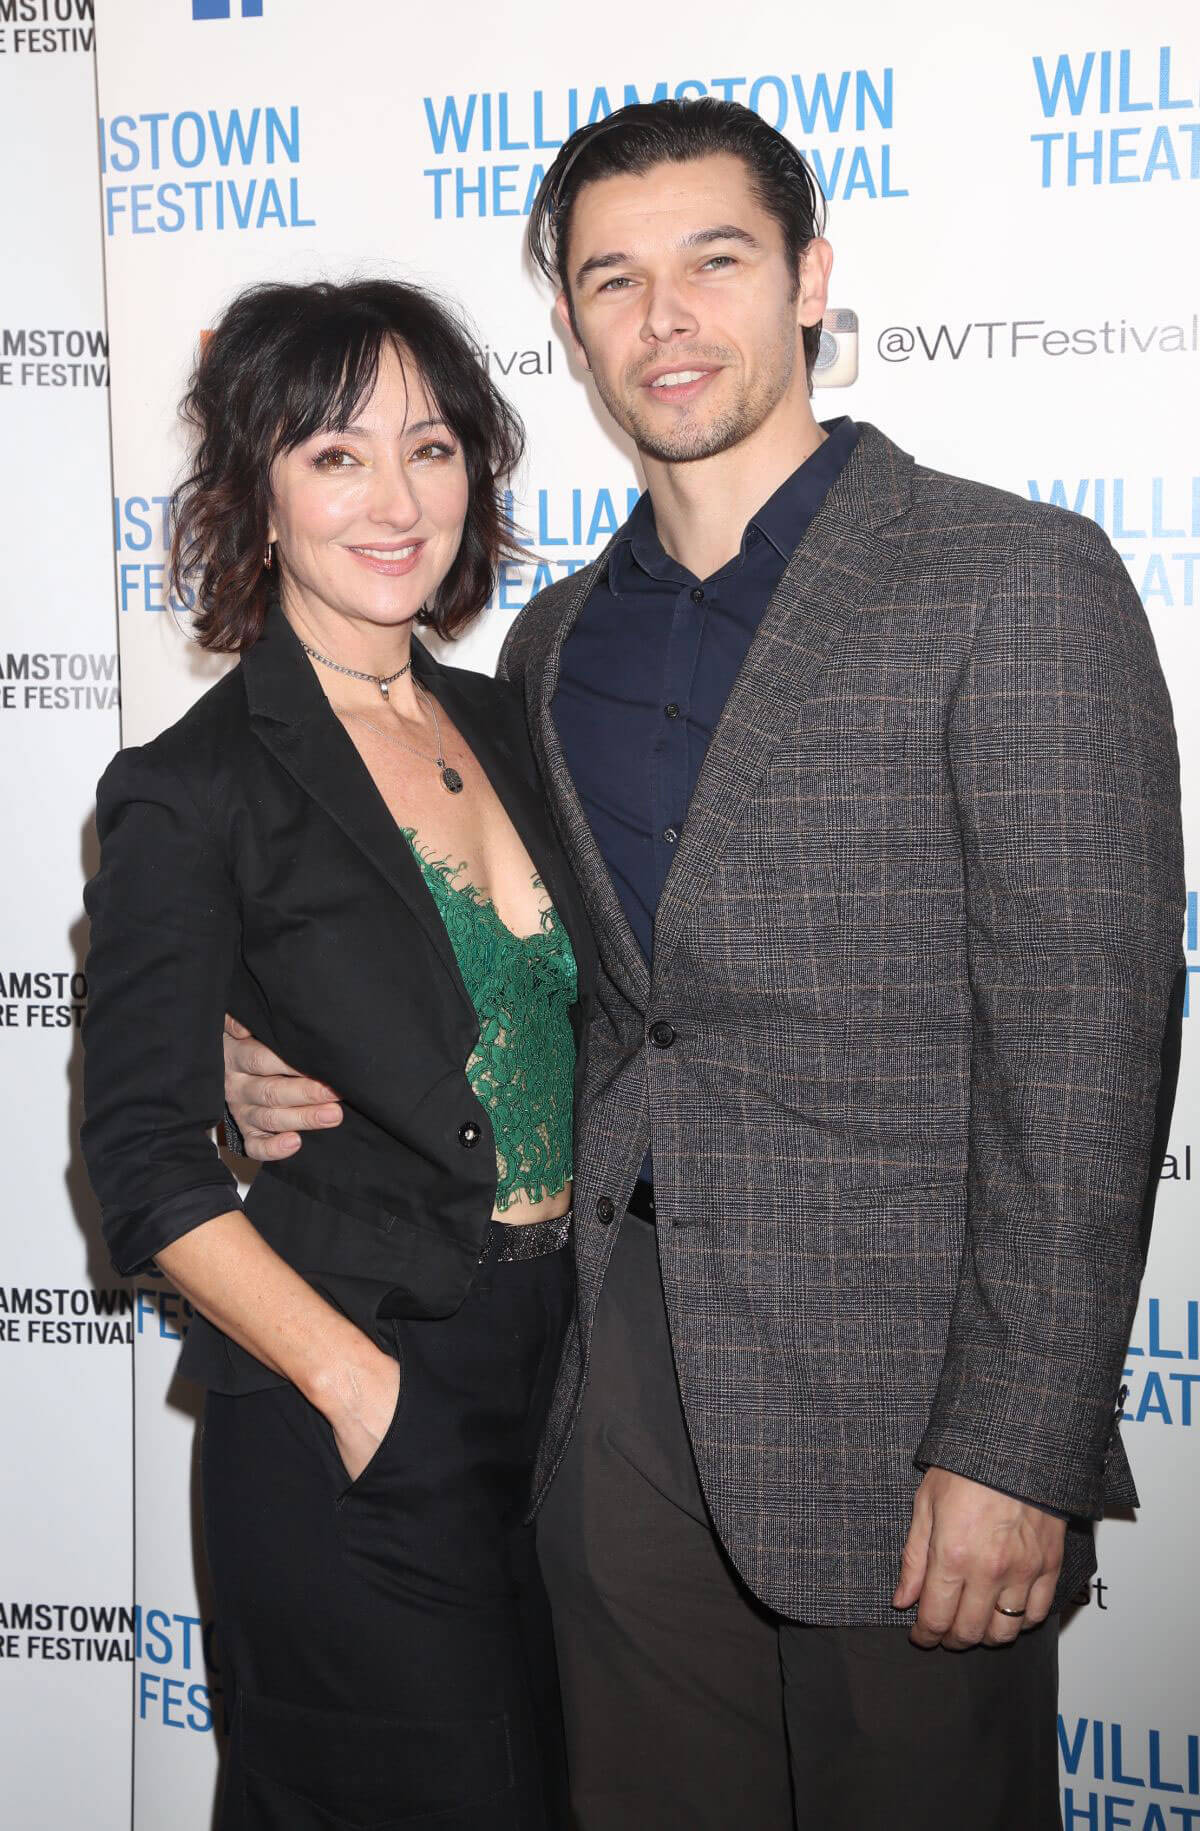 Carmen Cusack Stills at Williamstown Theatre Festival Gala 2018 at Tao Downtown 2018/02/06